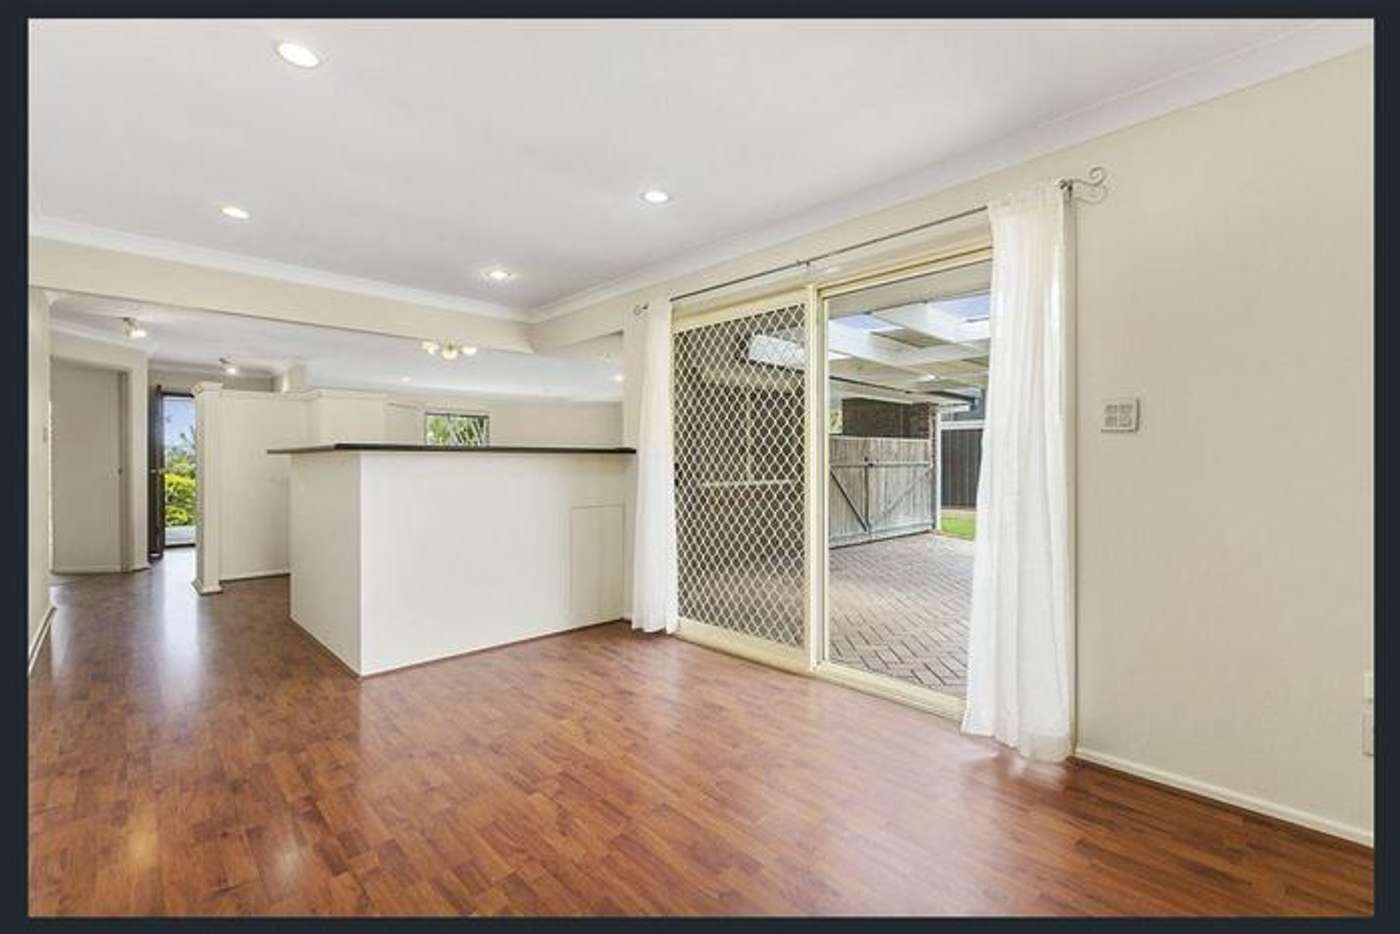 Seventh view of Homely house listing, 5 Glenalwyn Street, Holland Park QLD 4121